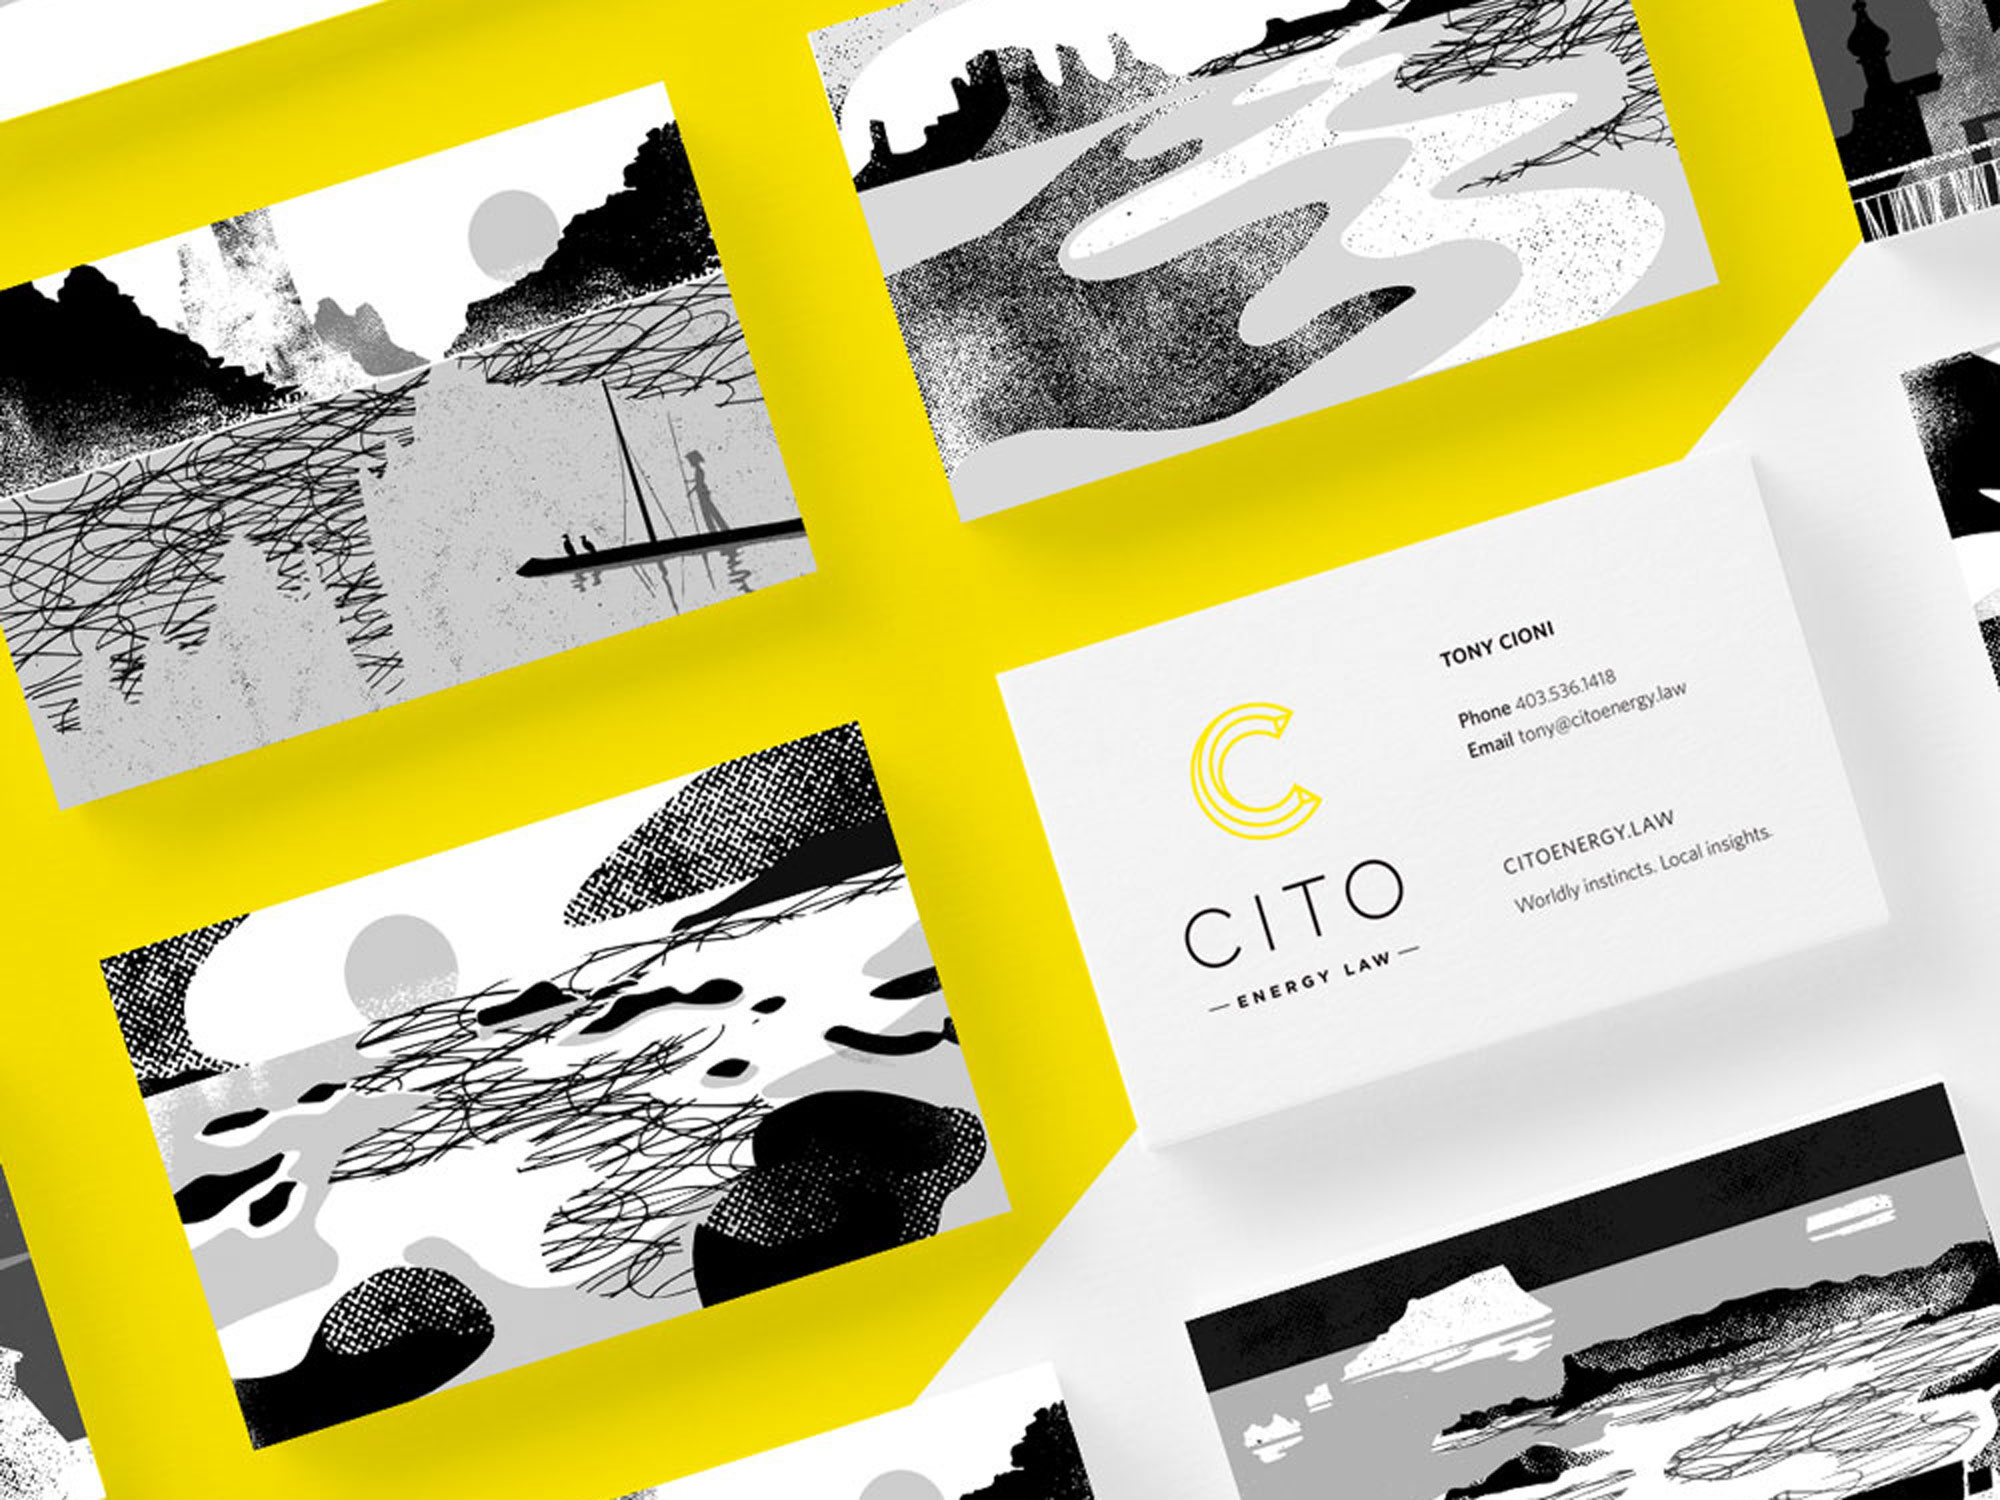 Textural black and white illustrations from around the world on corporate brand business cards for Cito Energy law in Calgary